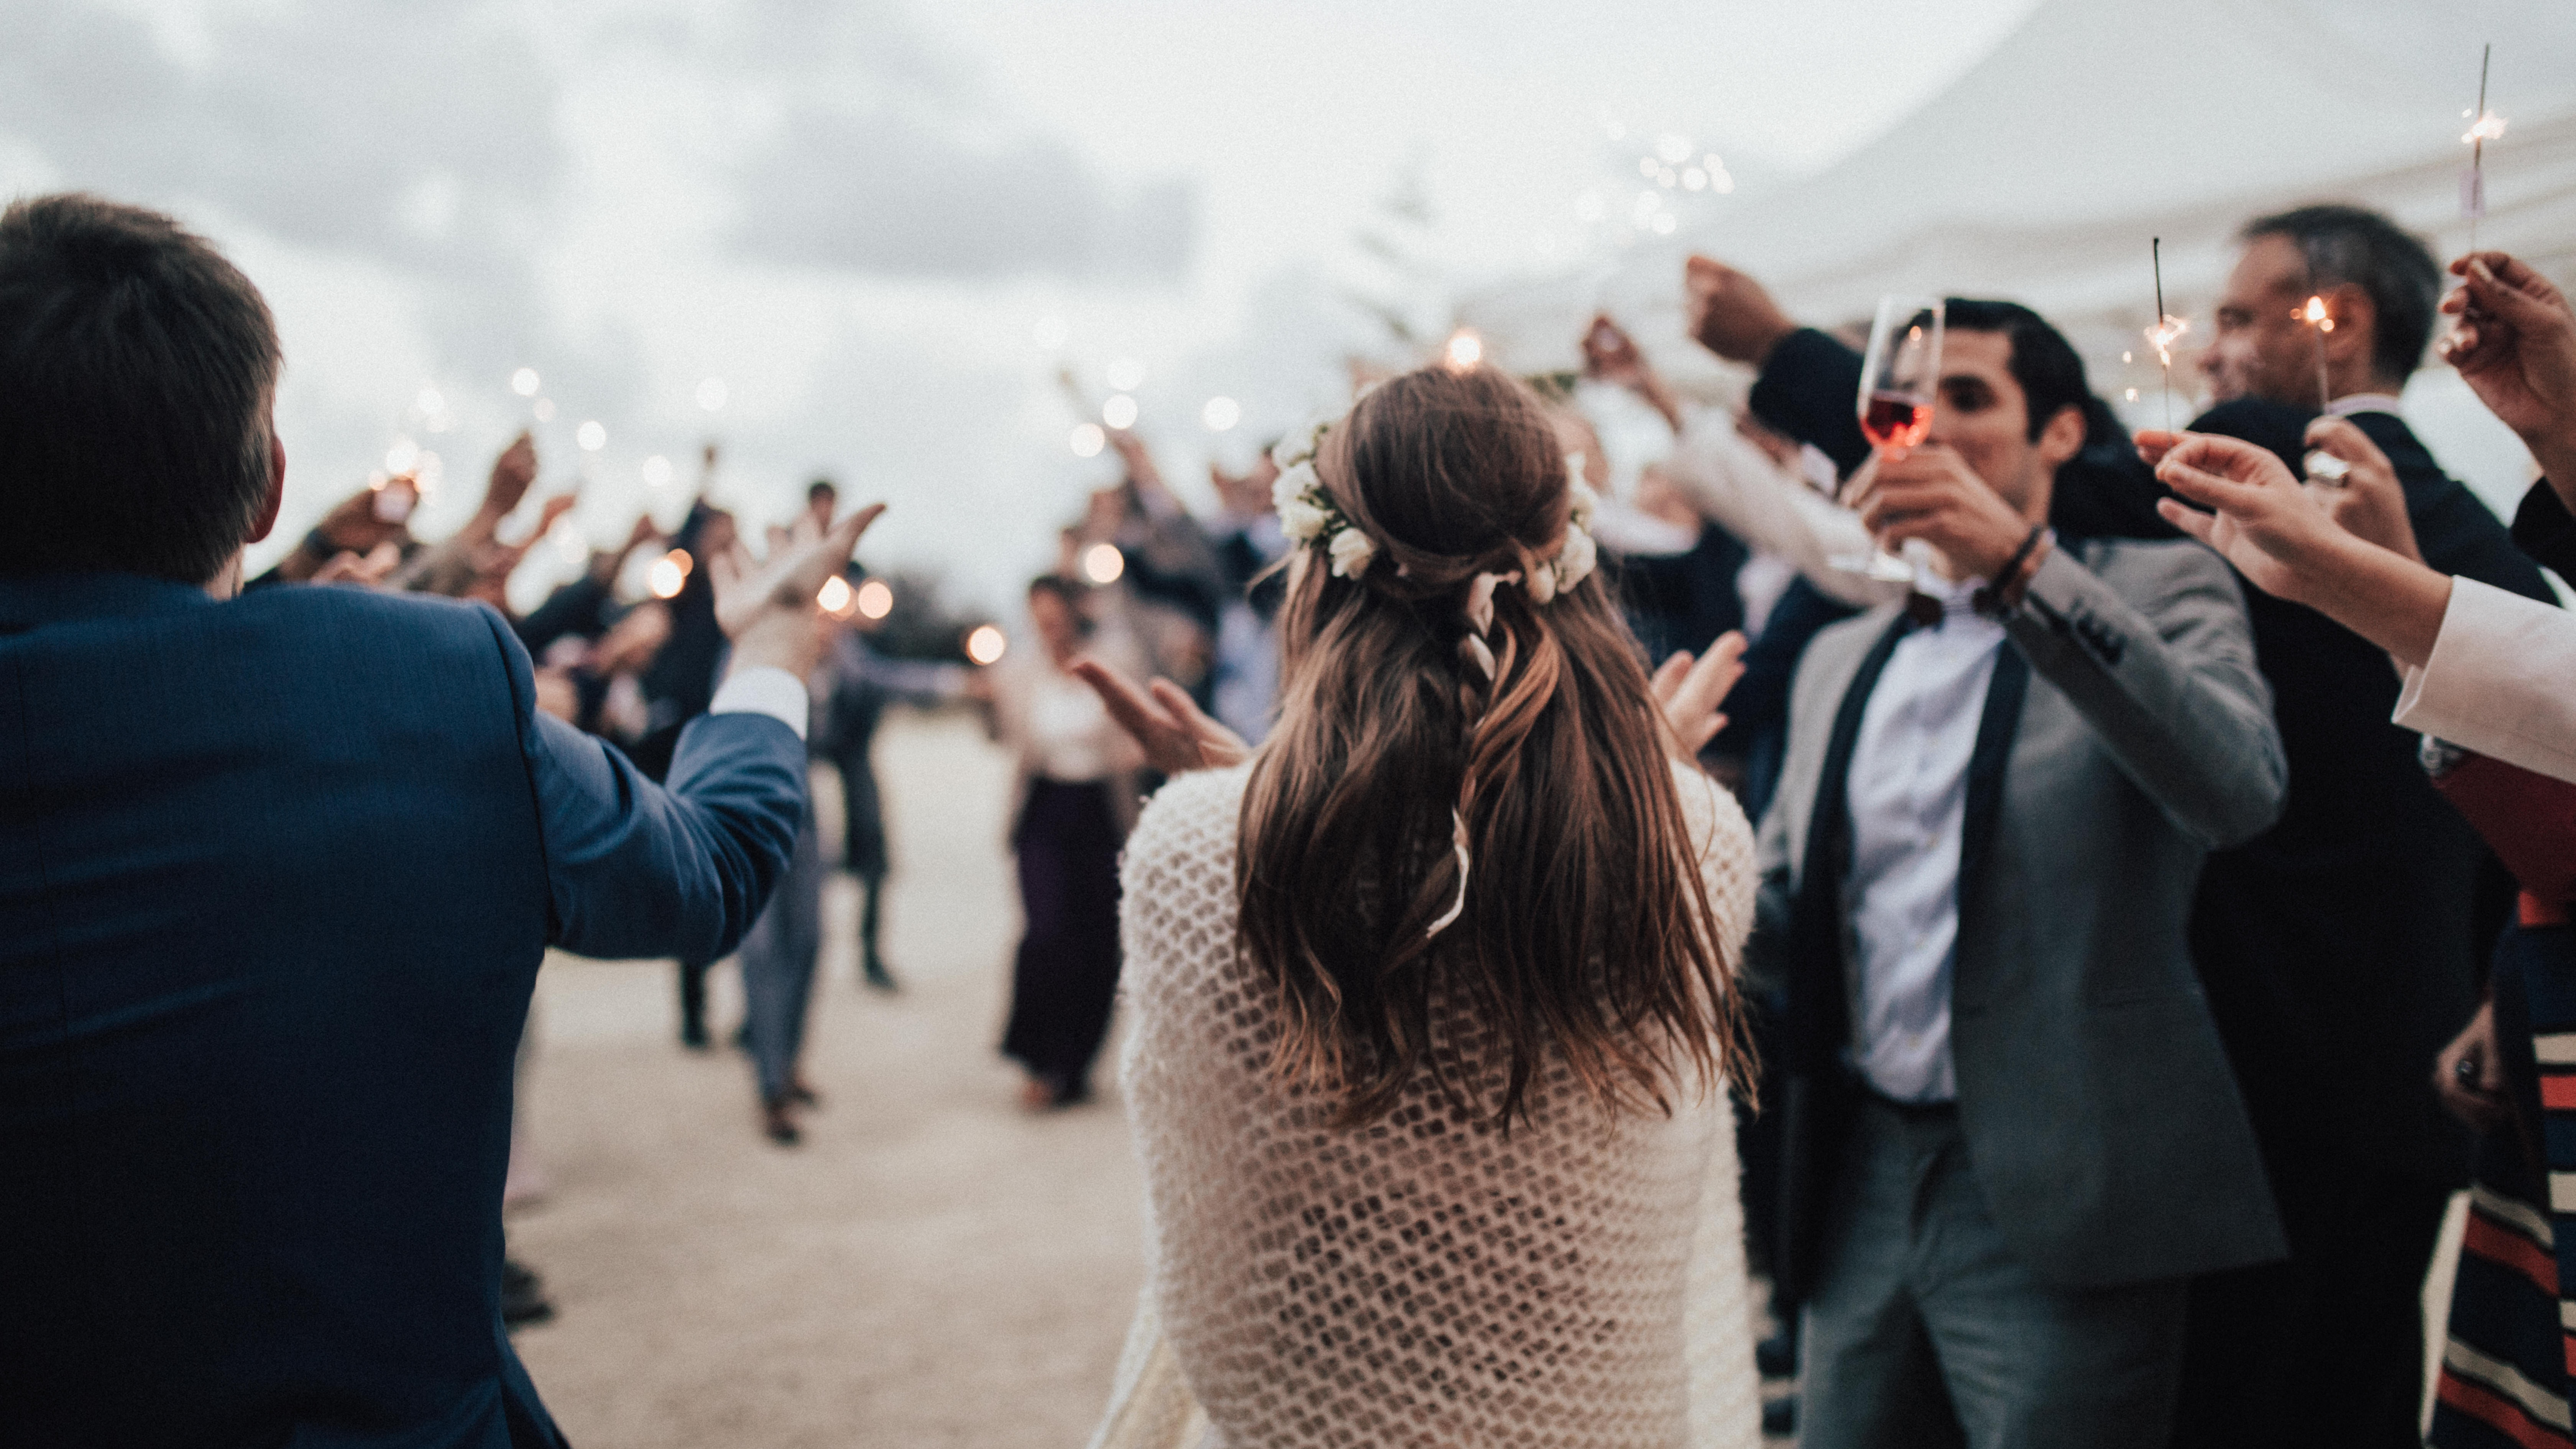 wedding crowd welcomes bride and groom with sparklers